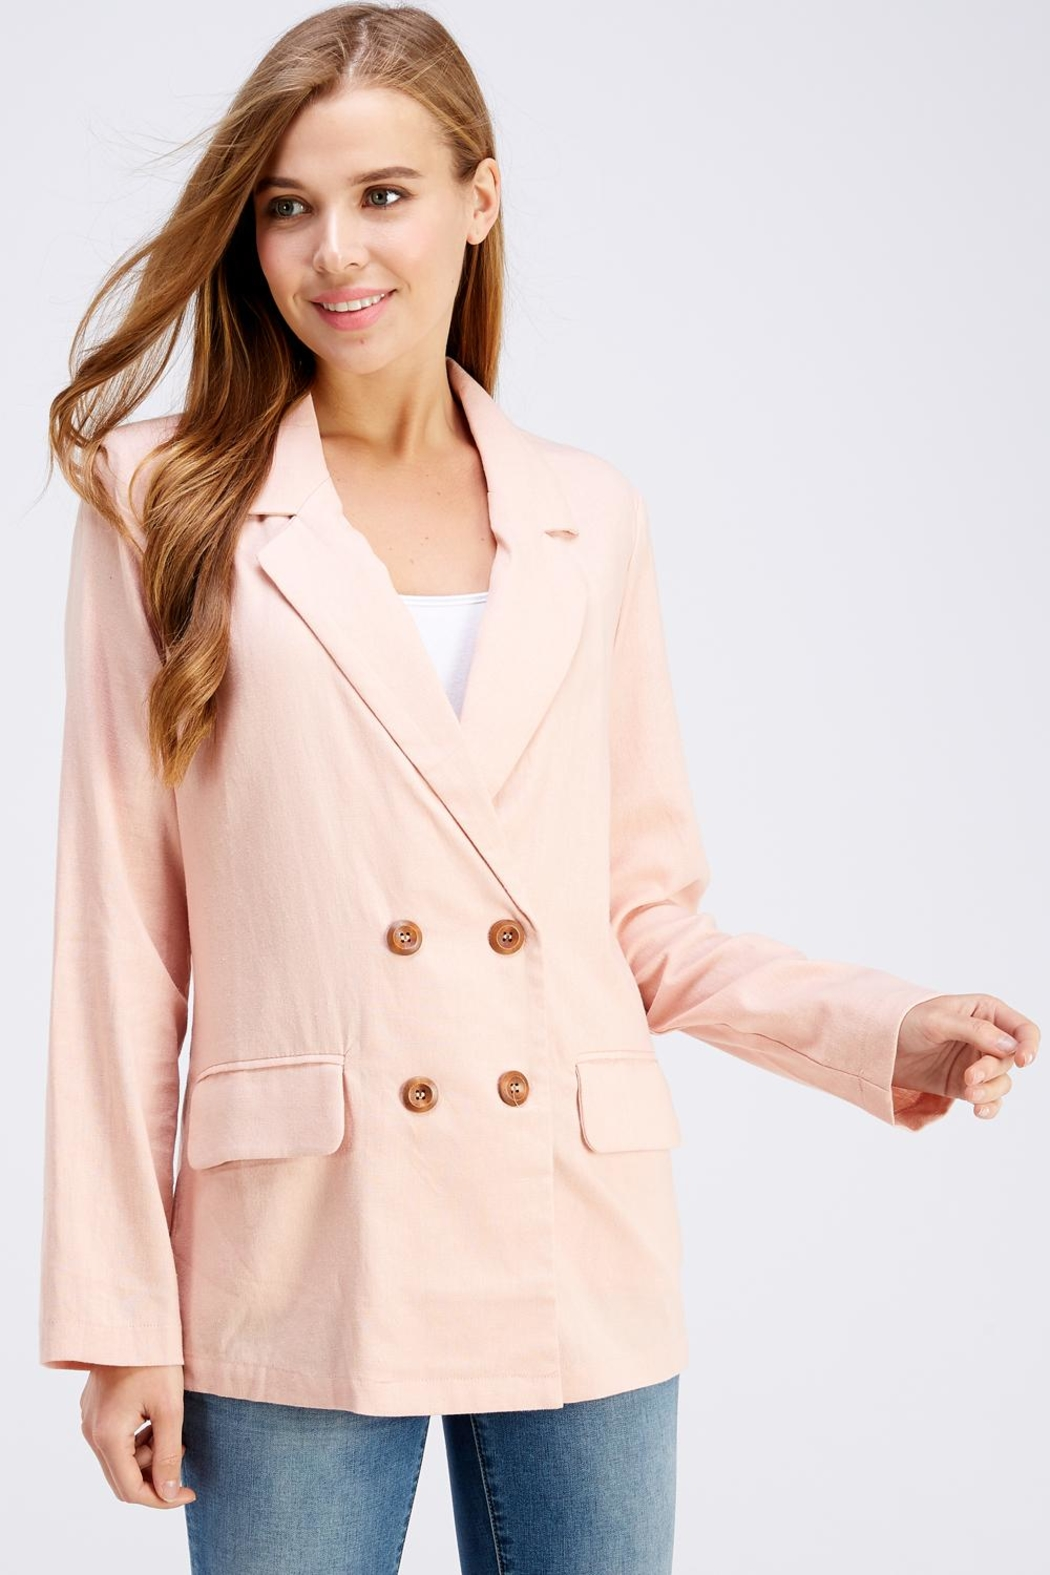 Cotton Candy LA Pink Linen Blazer - Main Image